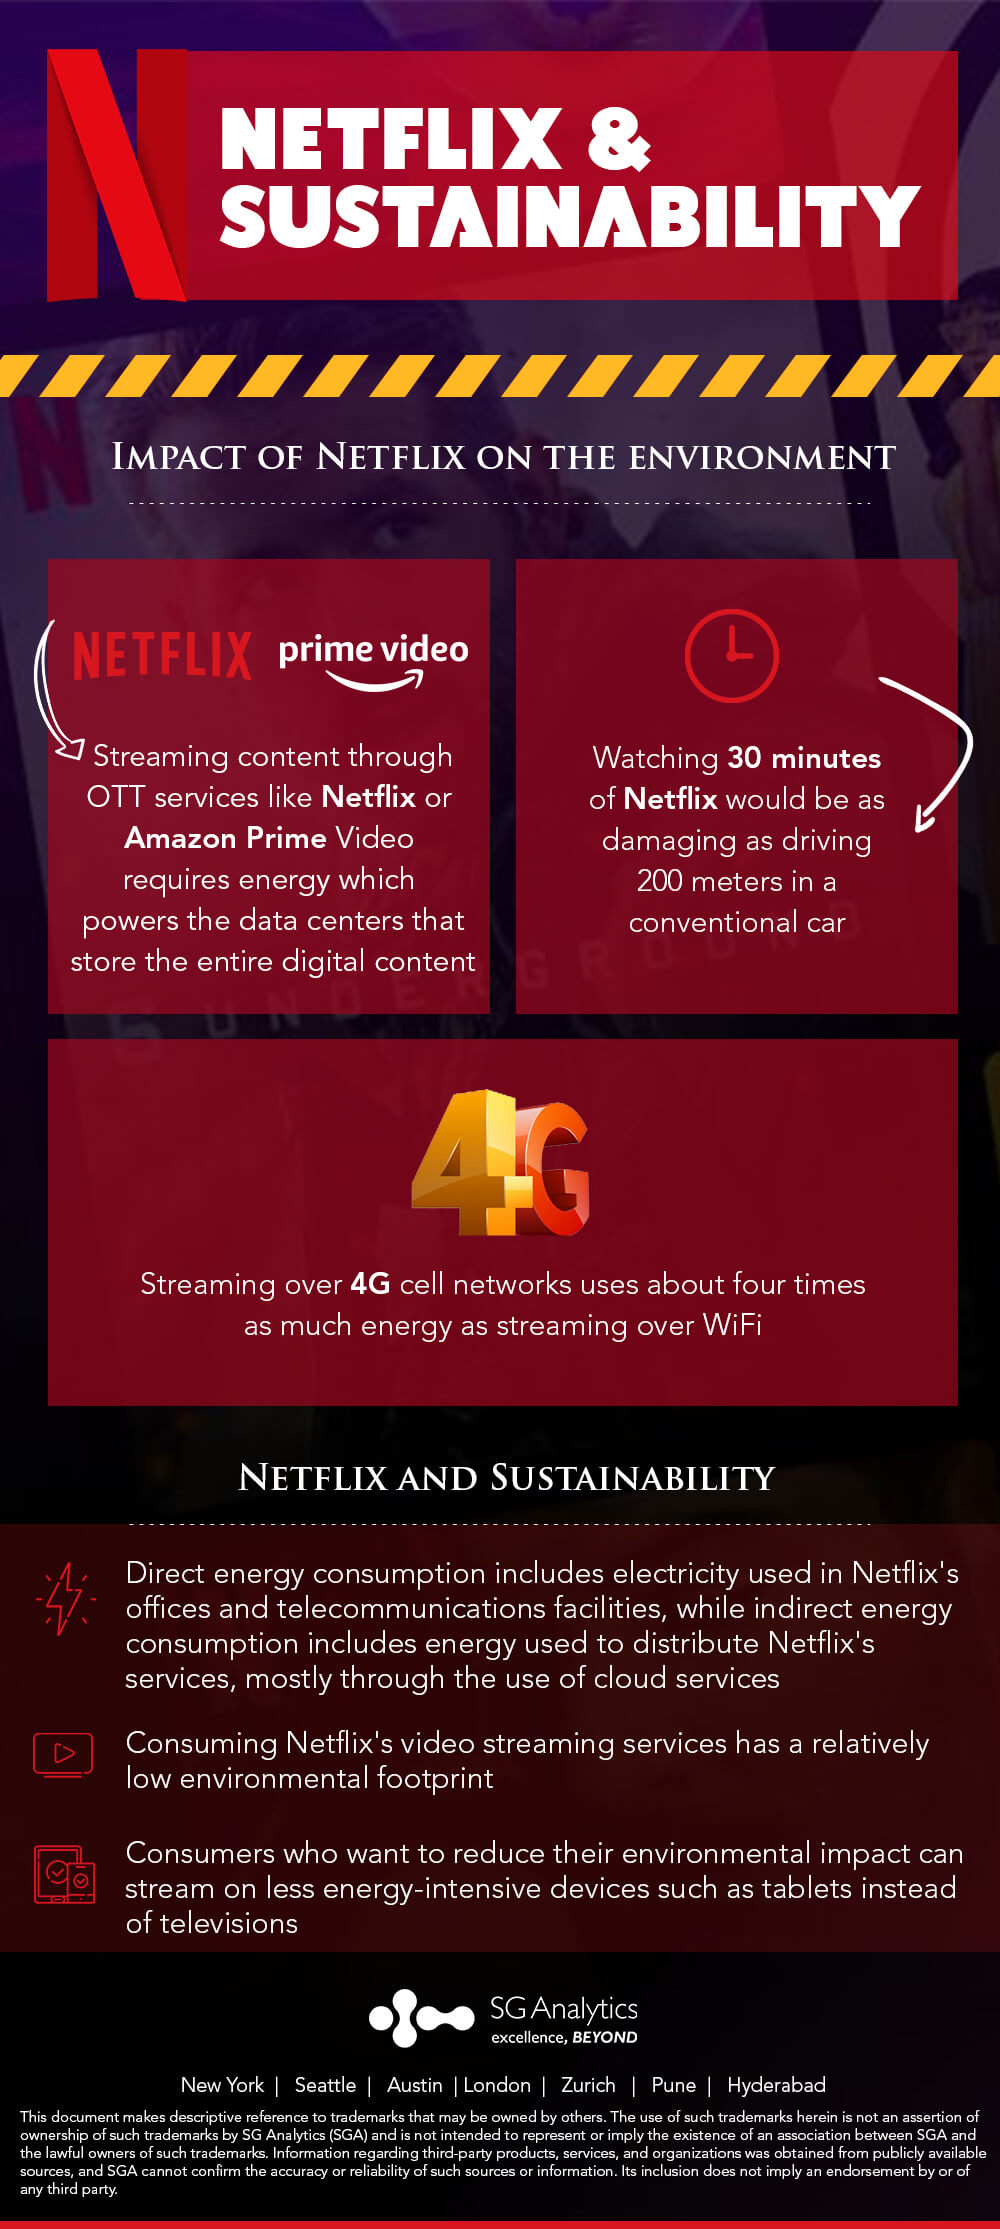 Around 1 MMT carbon footprint in 2020 – Netflix and Sustainability